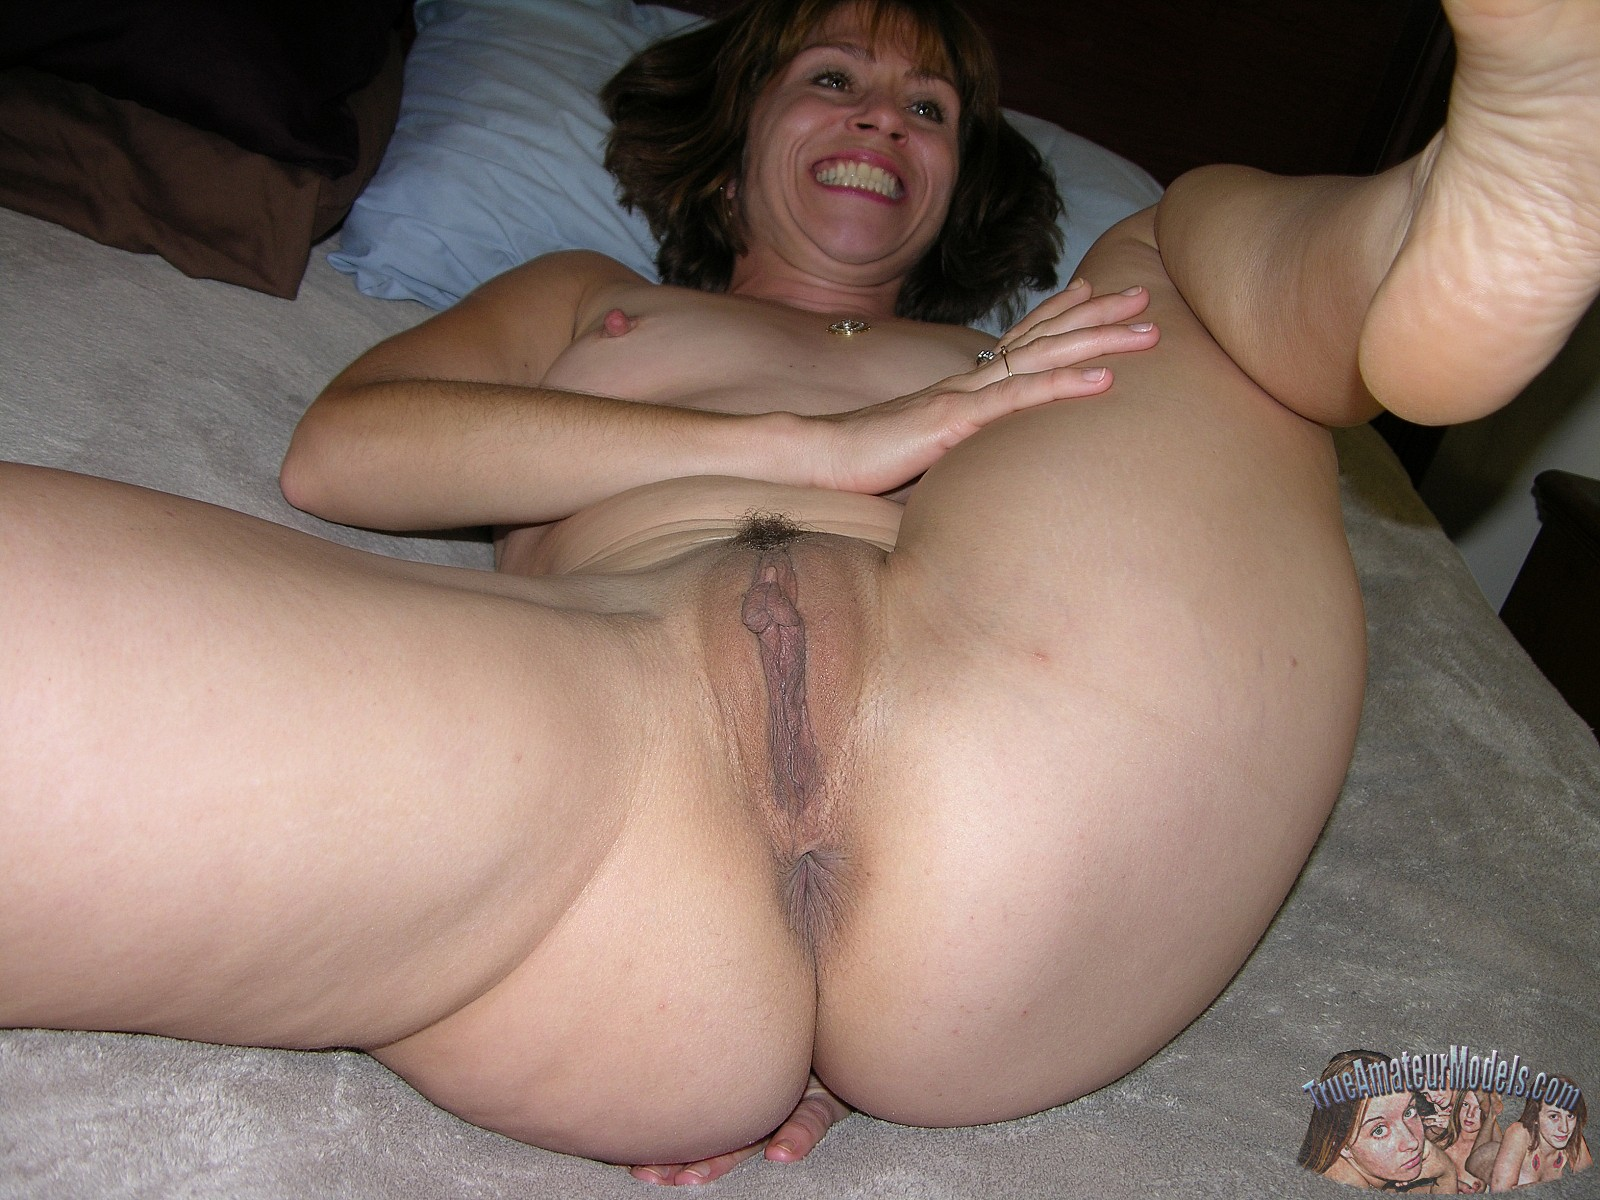 Homemade milf sex tumblr